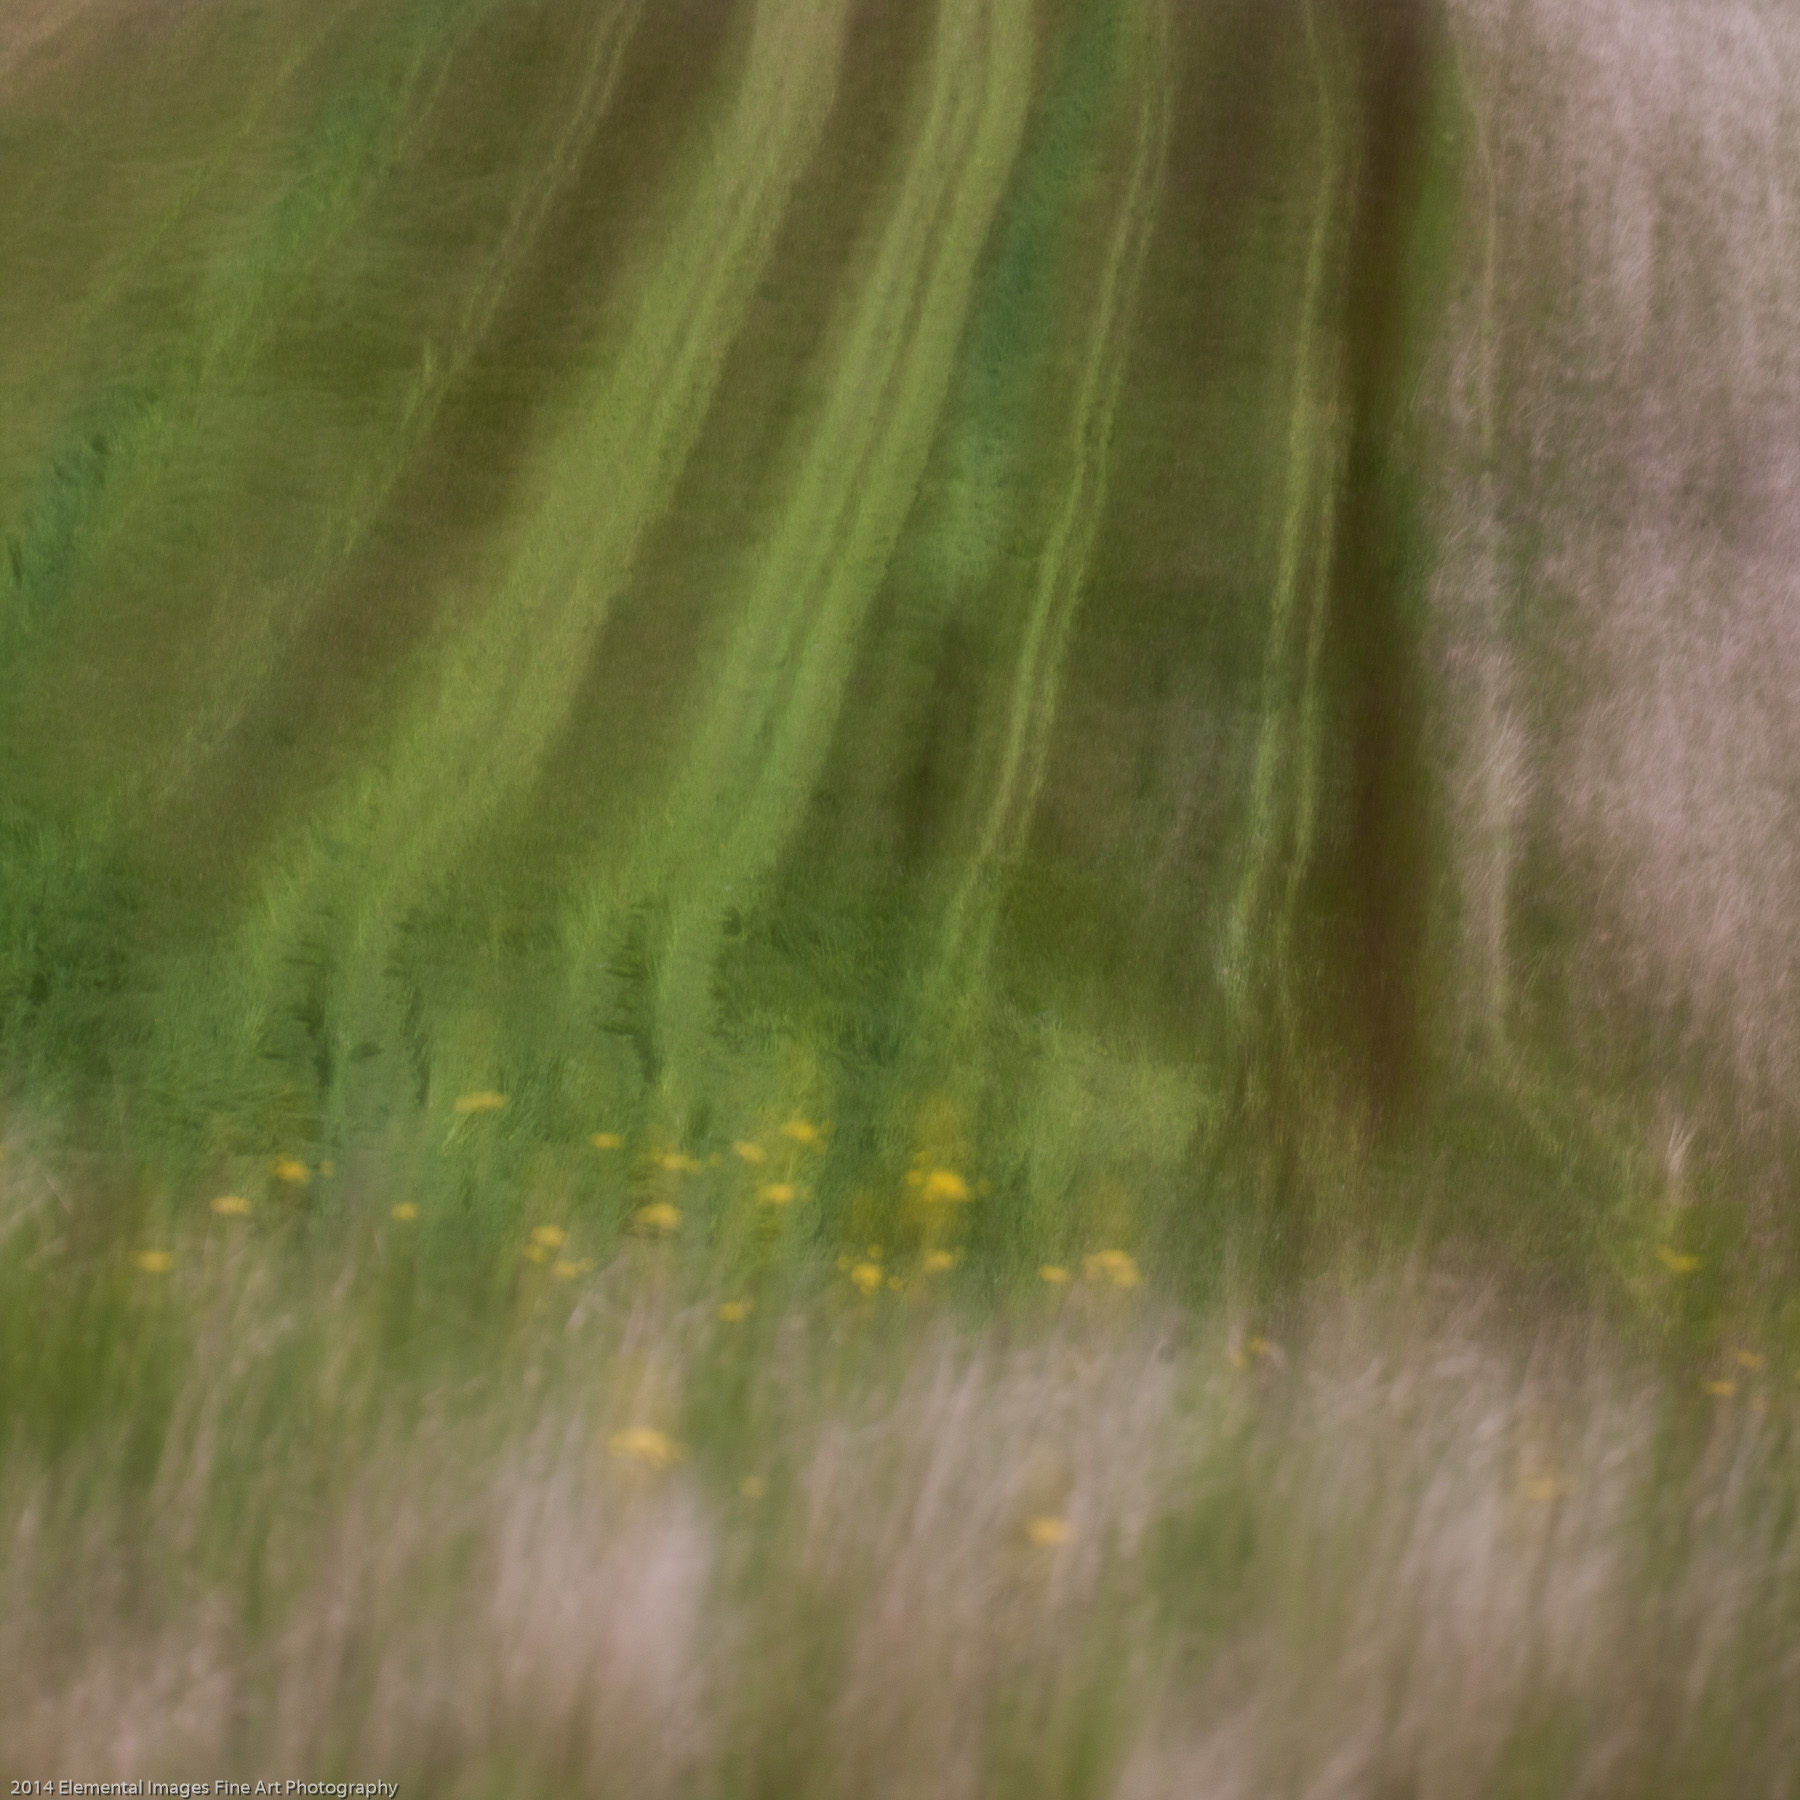 Palouse LXV | The Palouse | WA | USA - © 2014 Elemental Images Fine Art Photography - All Rights Reserved Worldwide